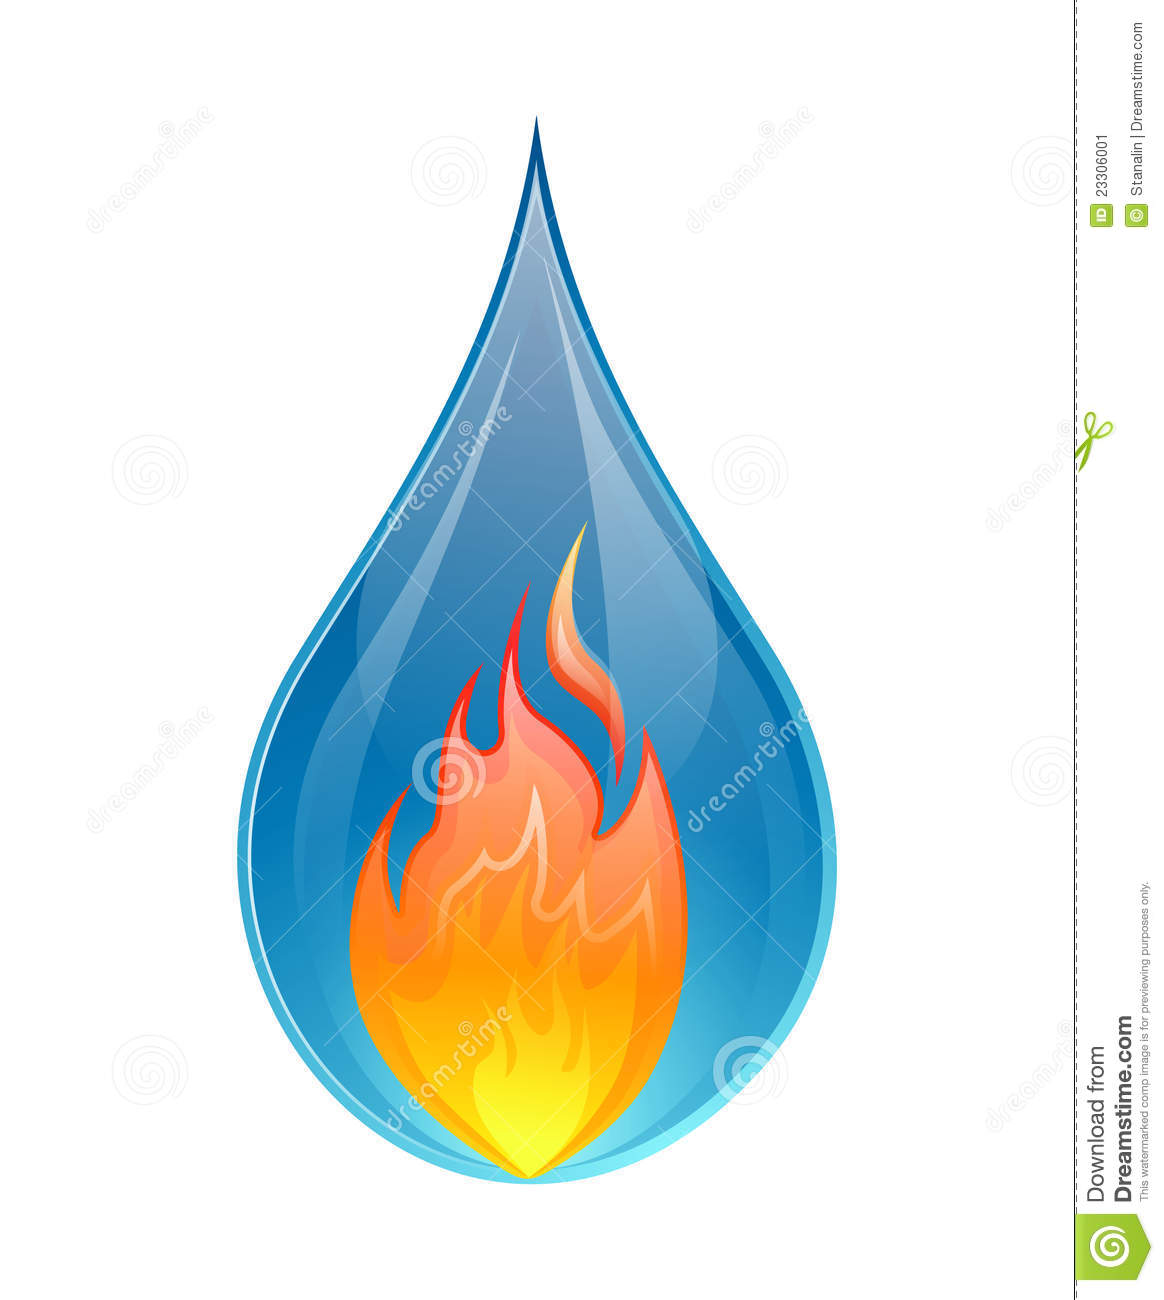 Fire and water concept - vector